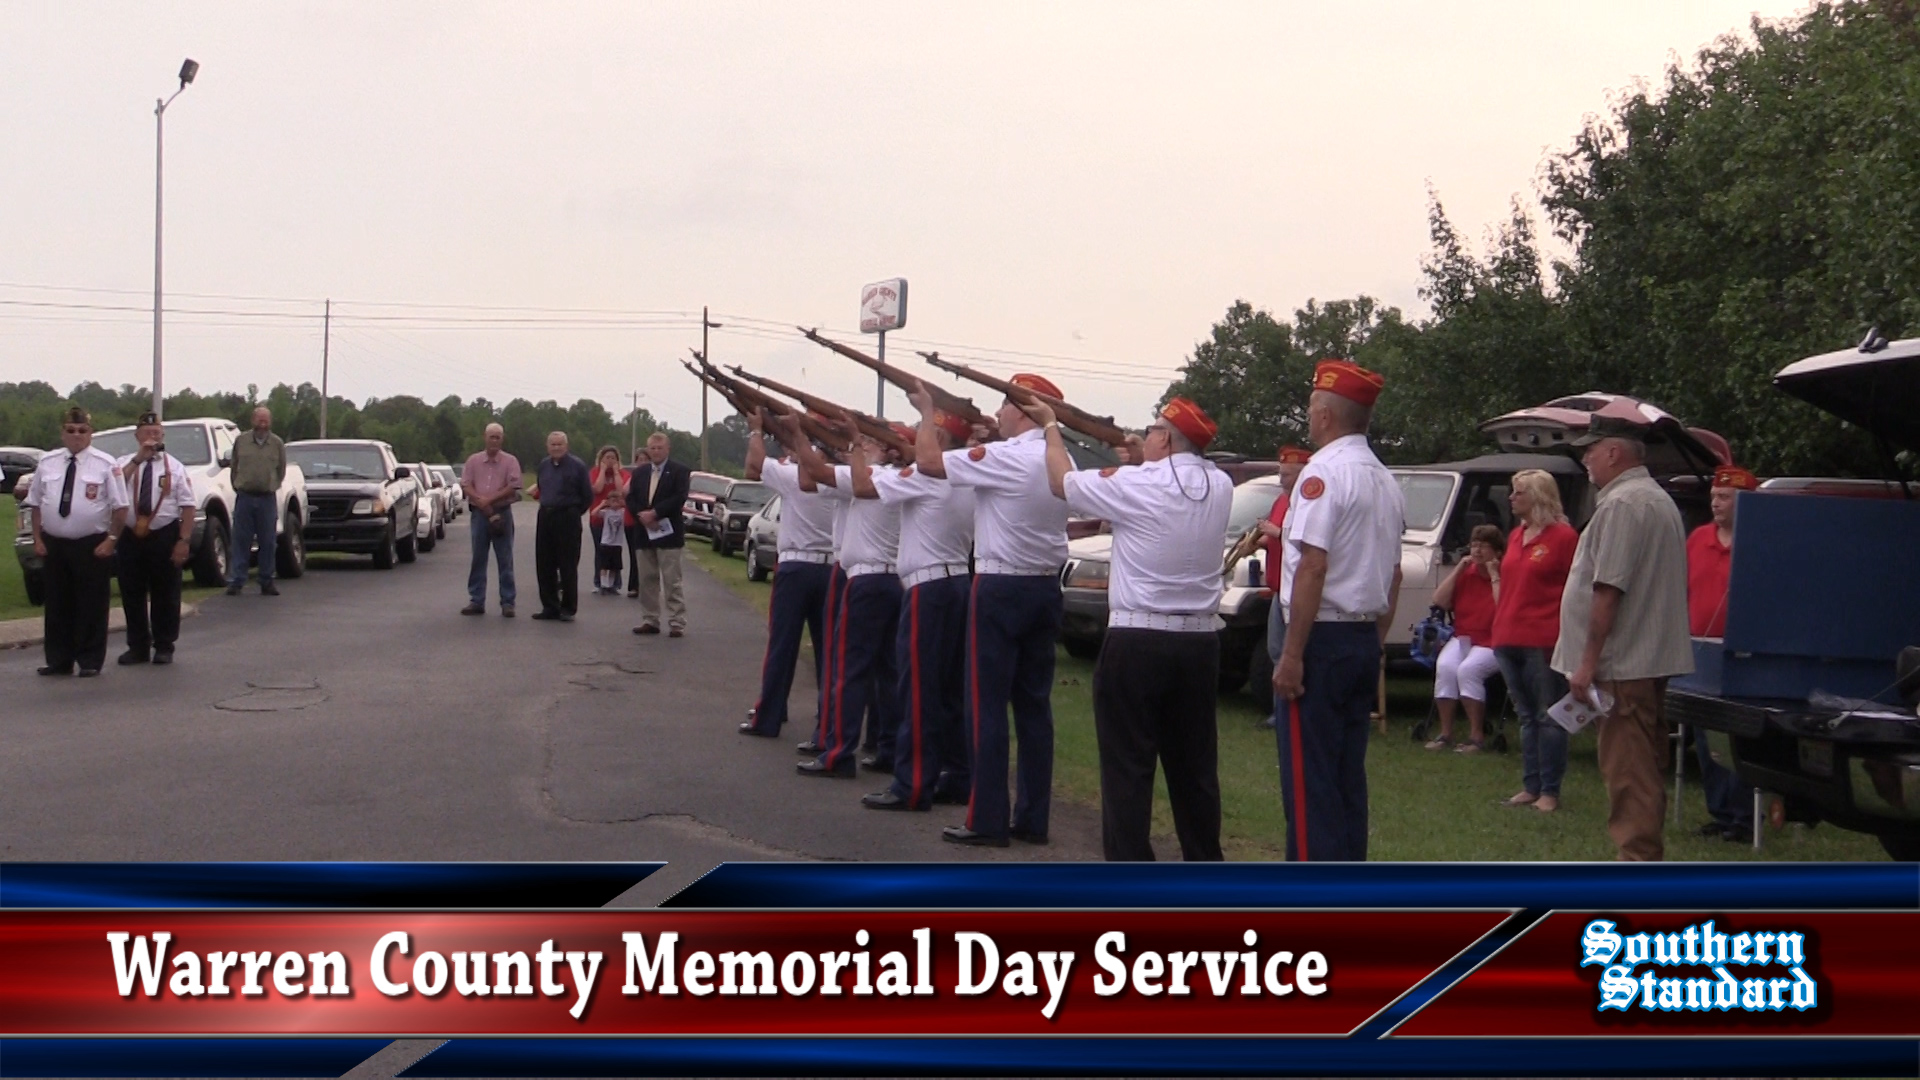 VIDEO - Warren County Memorial Day observance